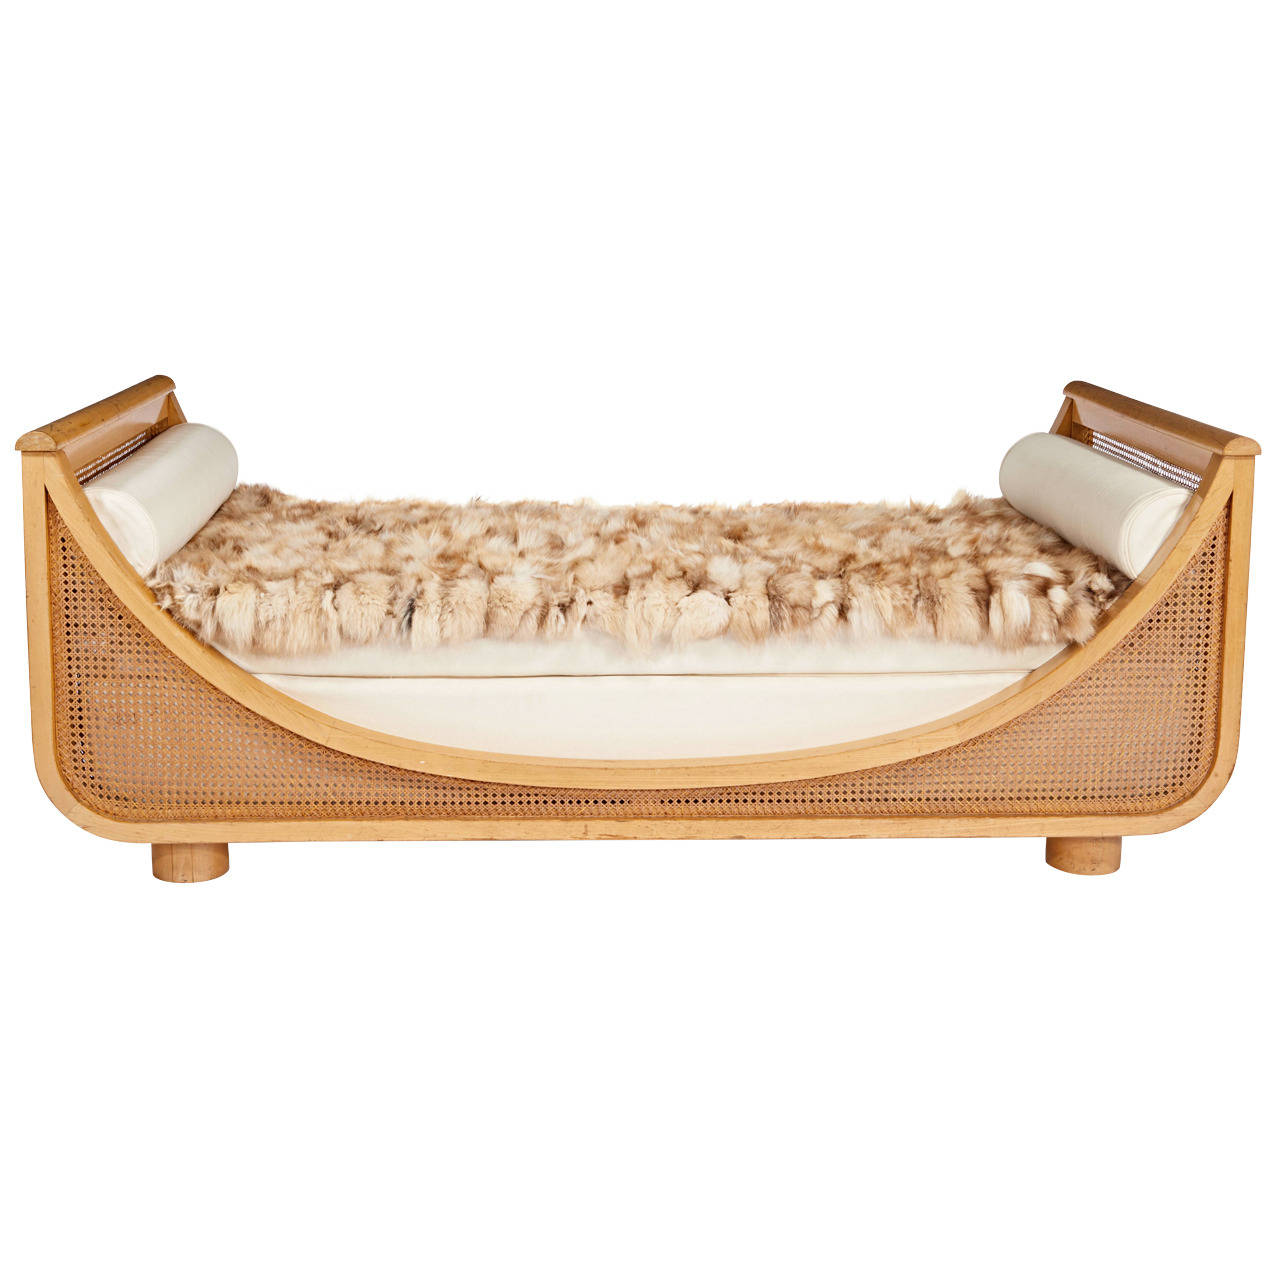 "Jean Royère  ""Gondola"" Daybed $75,000"